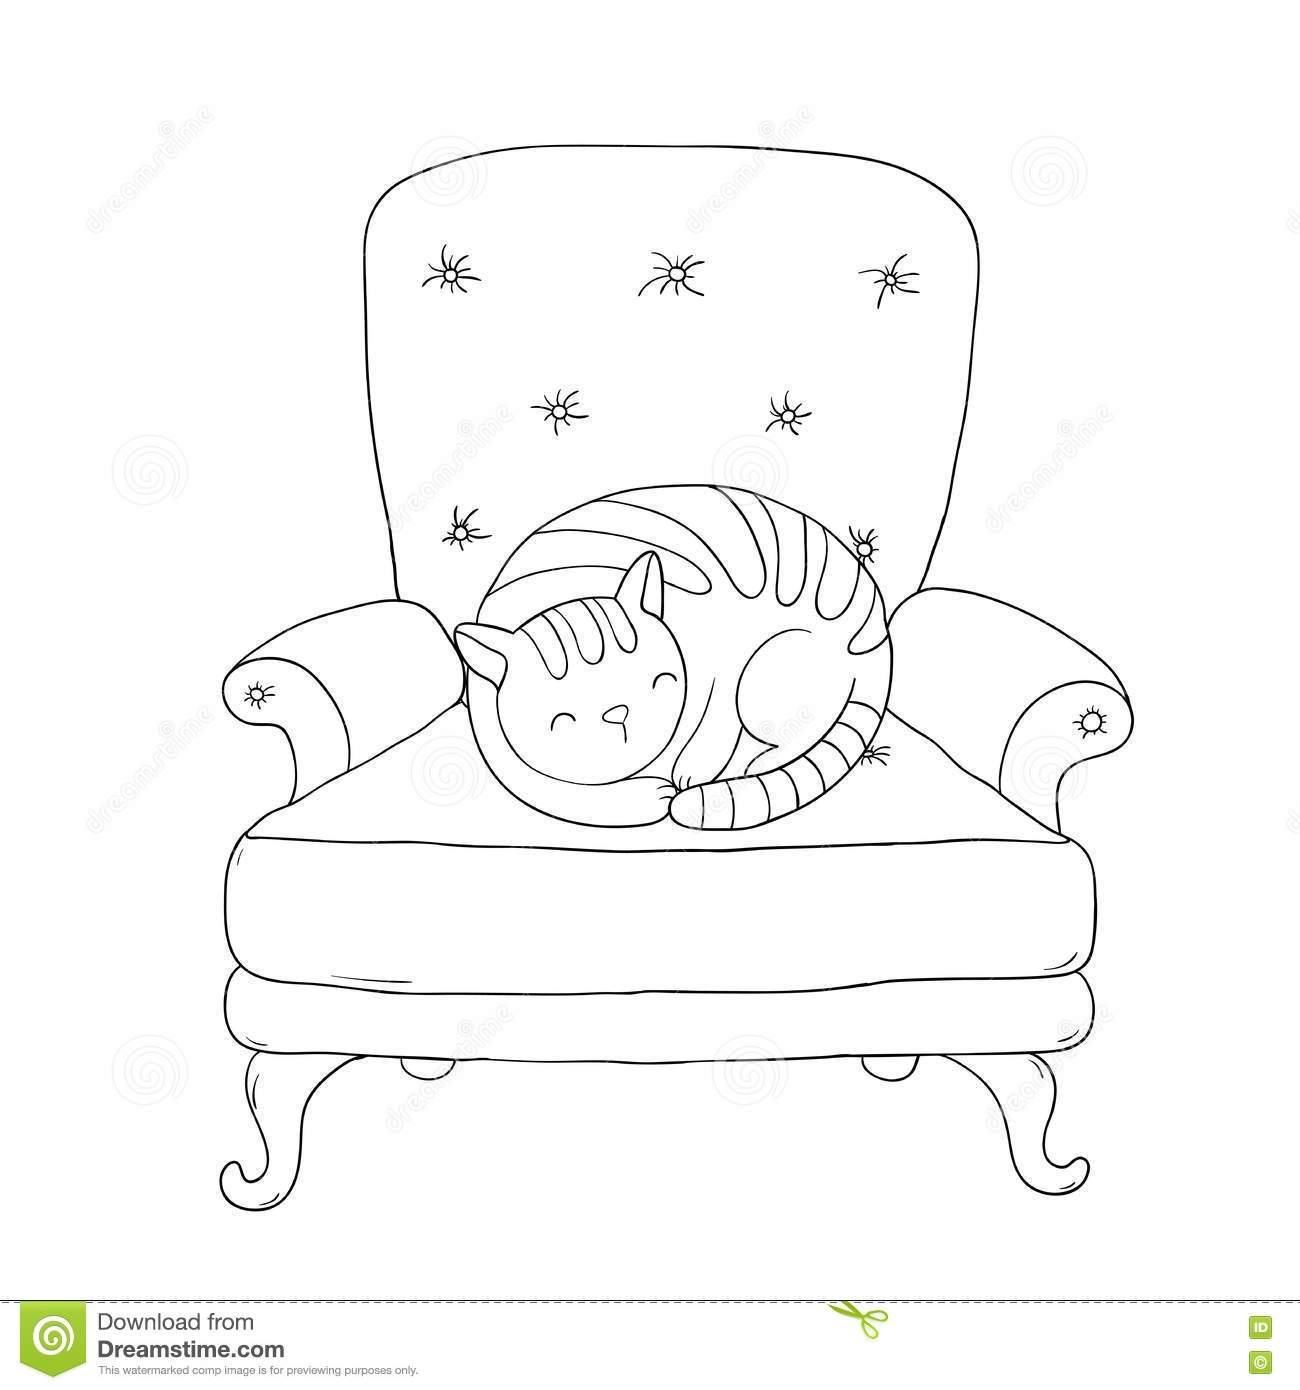 Cat climbing structure clipart black and white clip art royalty free stock Cat under the chair clipart black and white 2 » Clipart Portal clip art royalty free stock